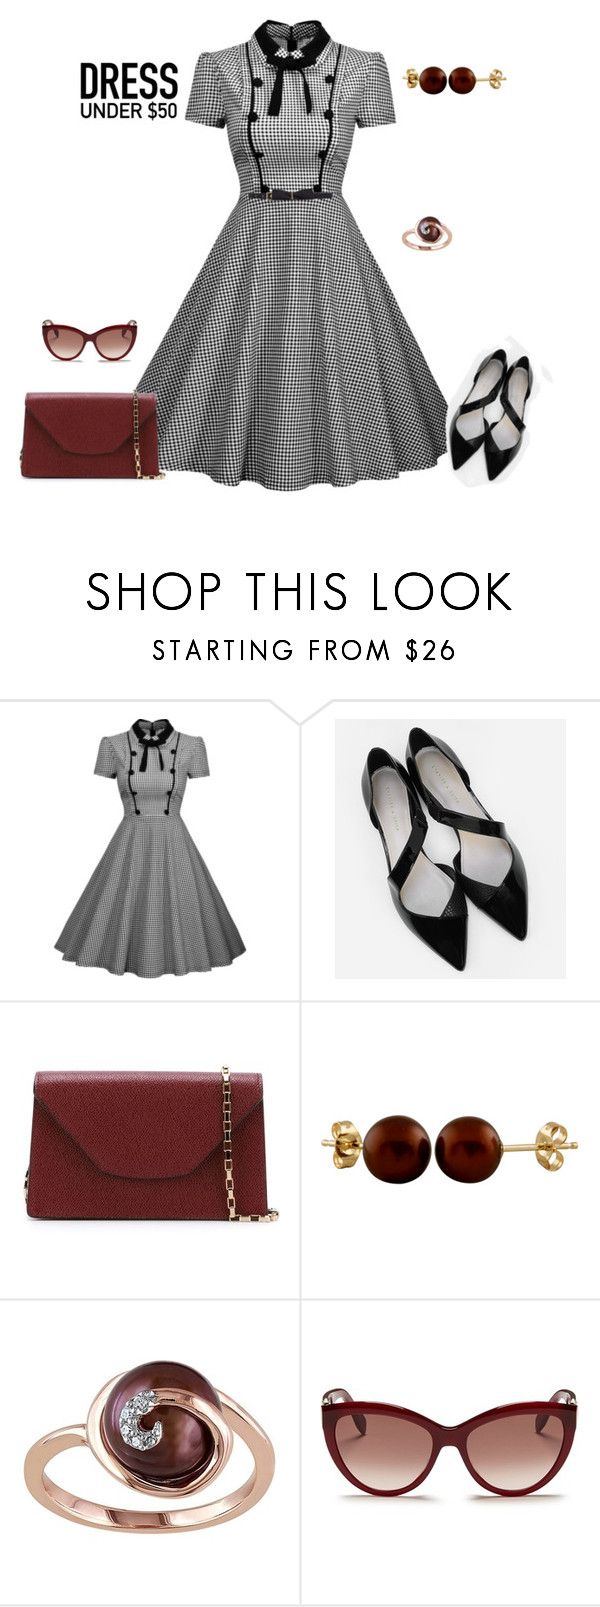 """""""outfit 4169"""" by natalyag ❤ liked on Polyvore featuring CHARLES & KEITH, Valextra, Splendid Pearls, Alexander McQueen, Lanvin and Dressunder50"""